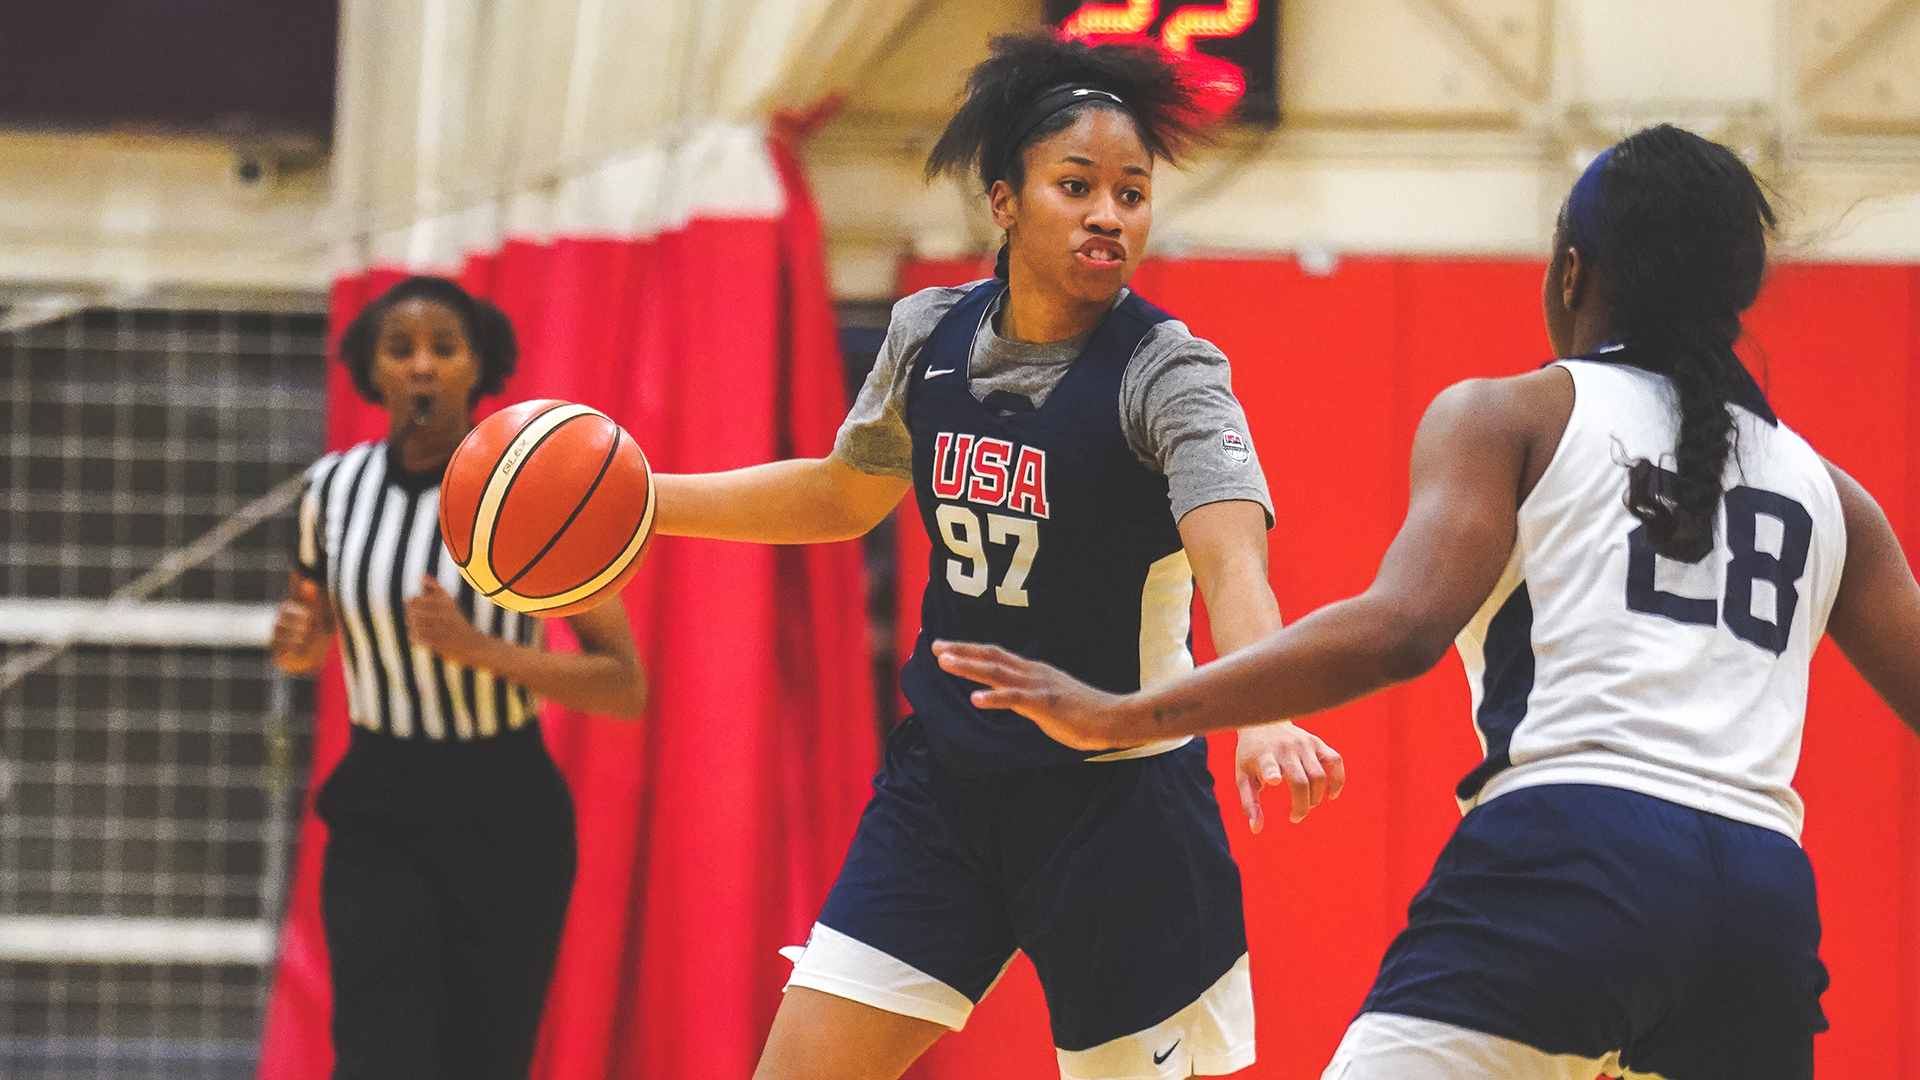 2019 U.S. Pan American Games team namedConnectSign up for Hoopfeed's Weekly NewsletterTwitterSearch